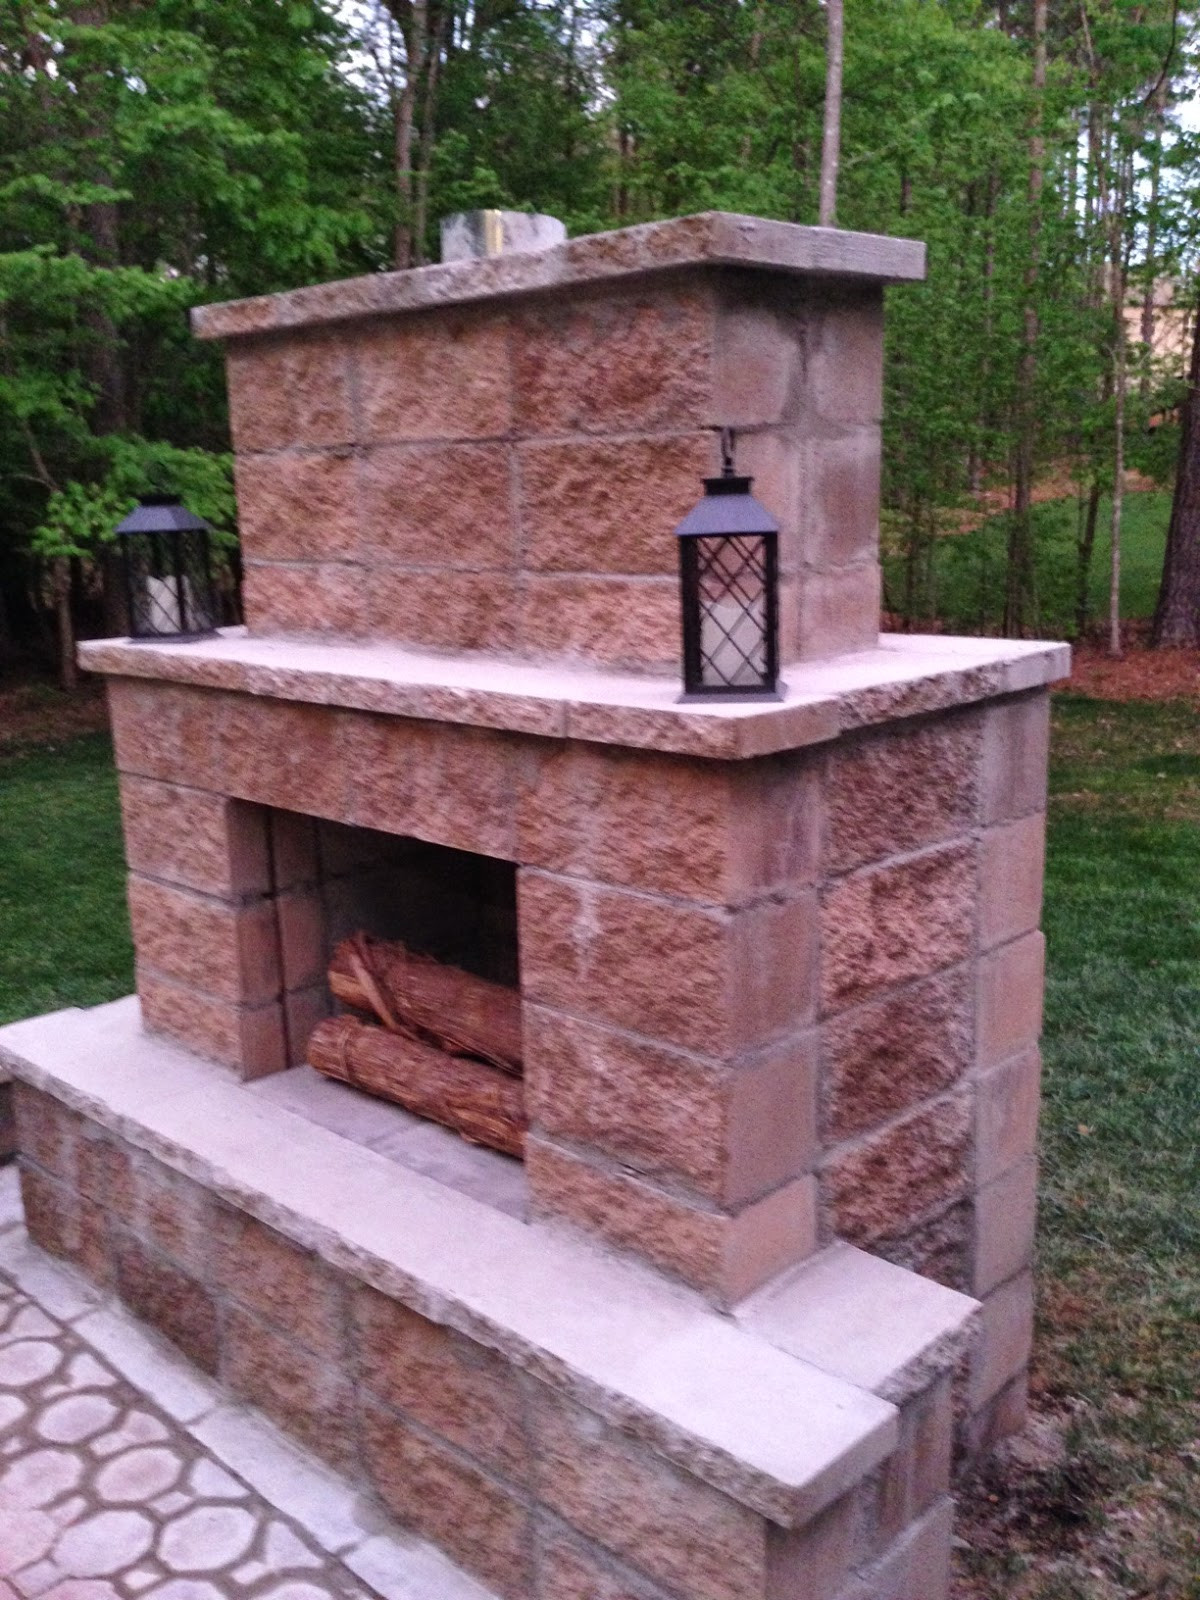 DIY Fireplace Outdoor  Life in the Barbie Dream House DIY Paver Patio and